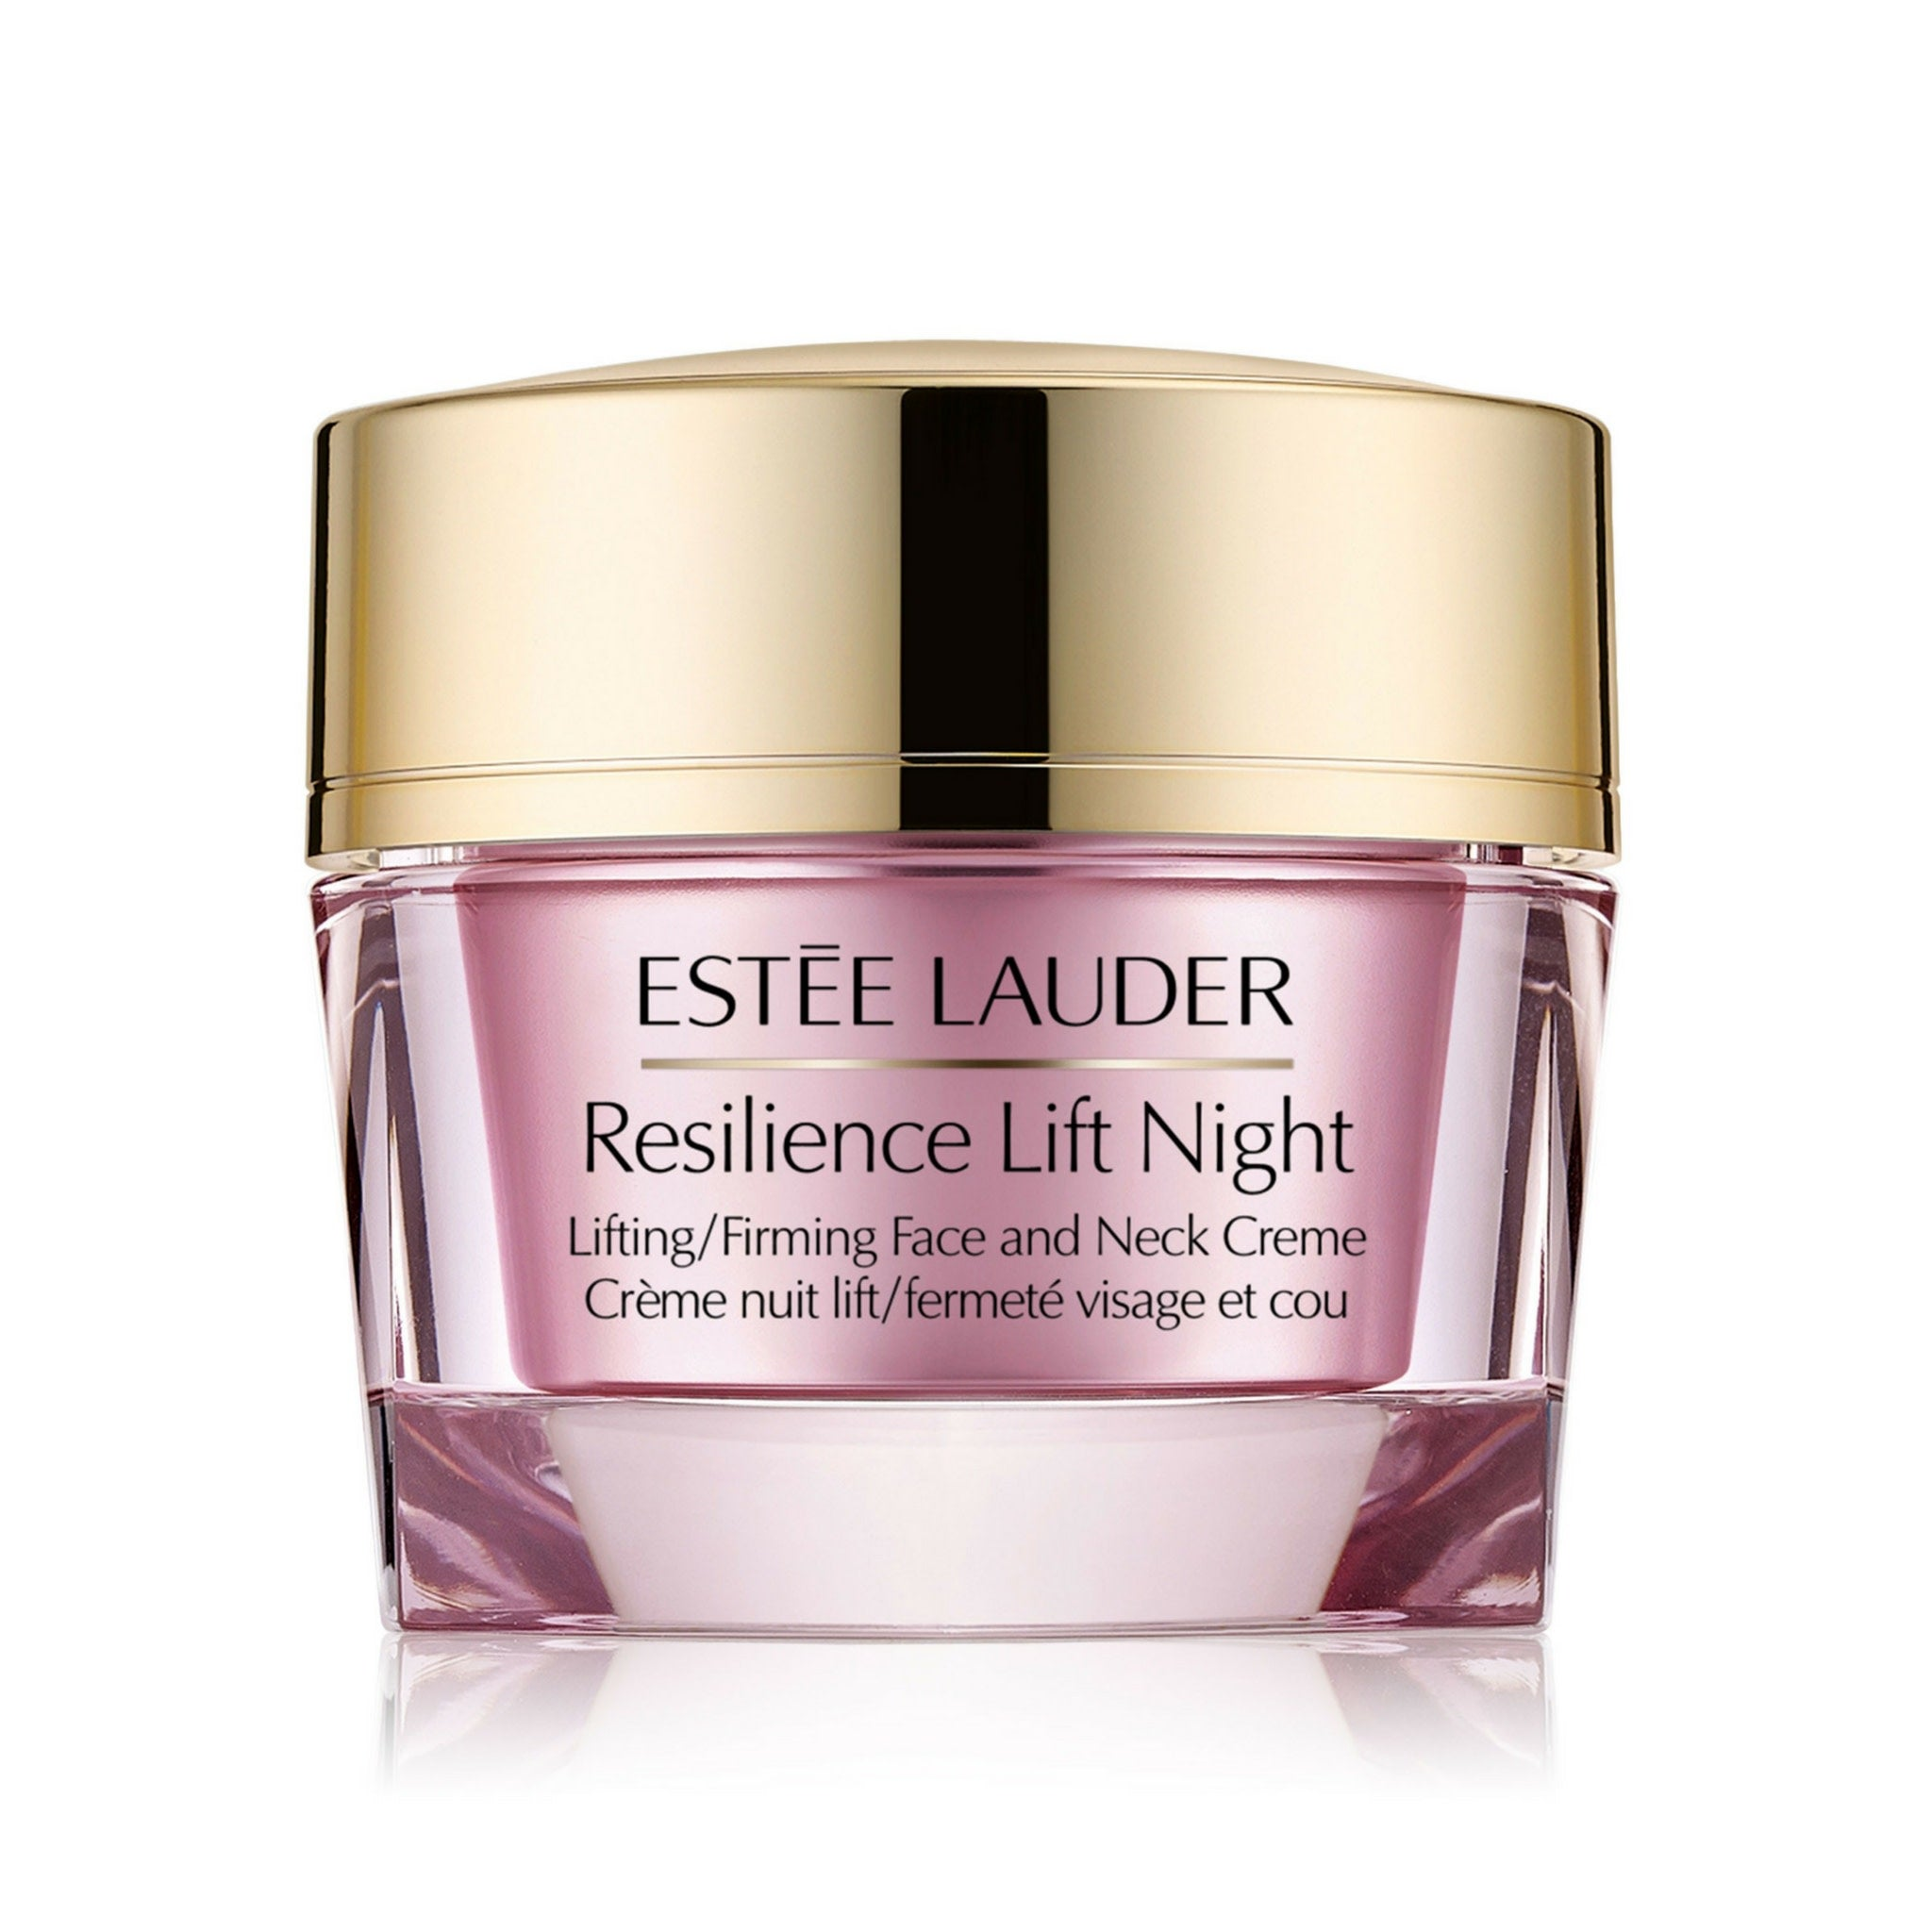 Resilience Lift Night Lifting/Firming Face and Neck Crème